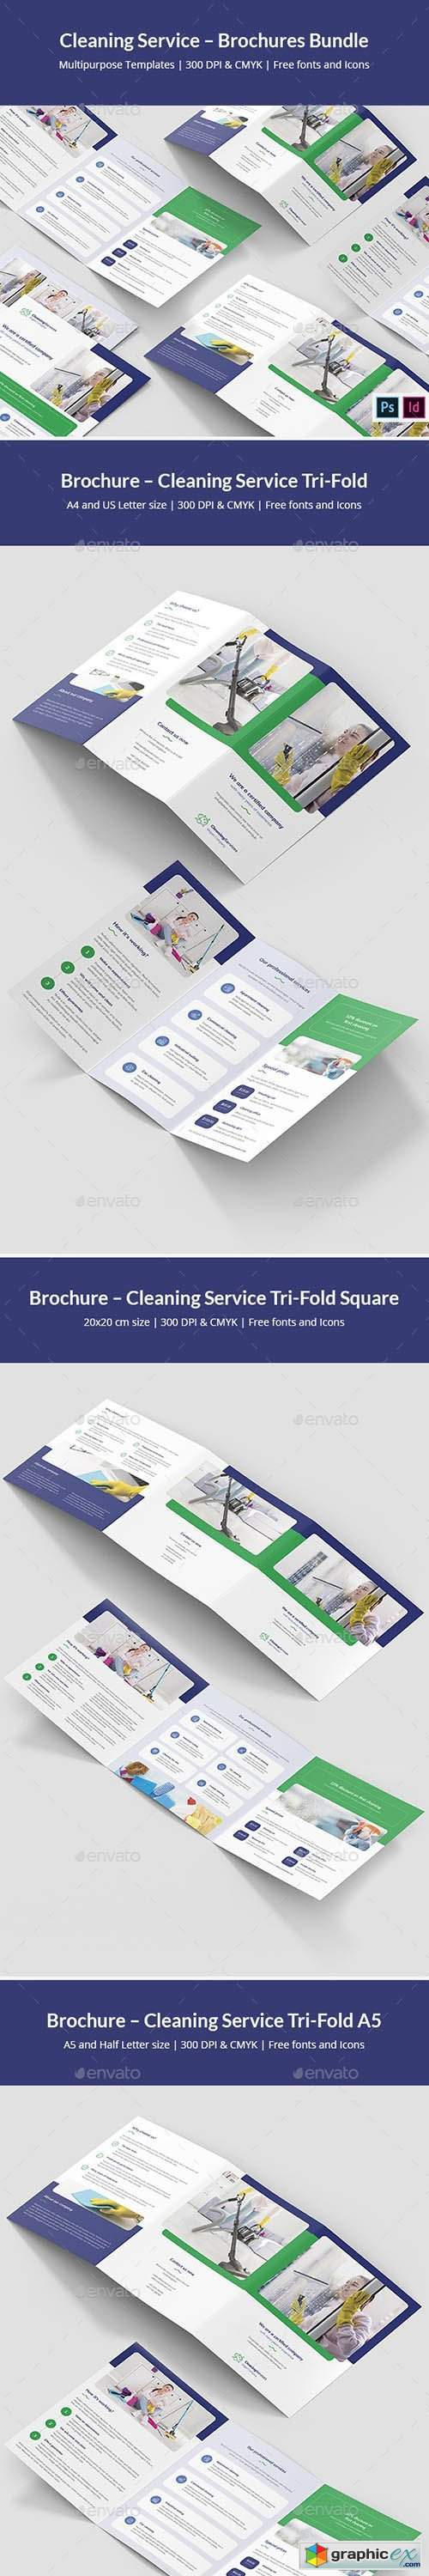 Cleaning Service – Brochures Bundle Print Templates 8 in 1